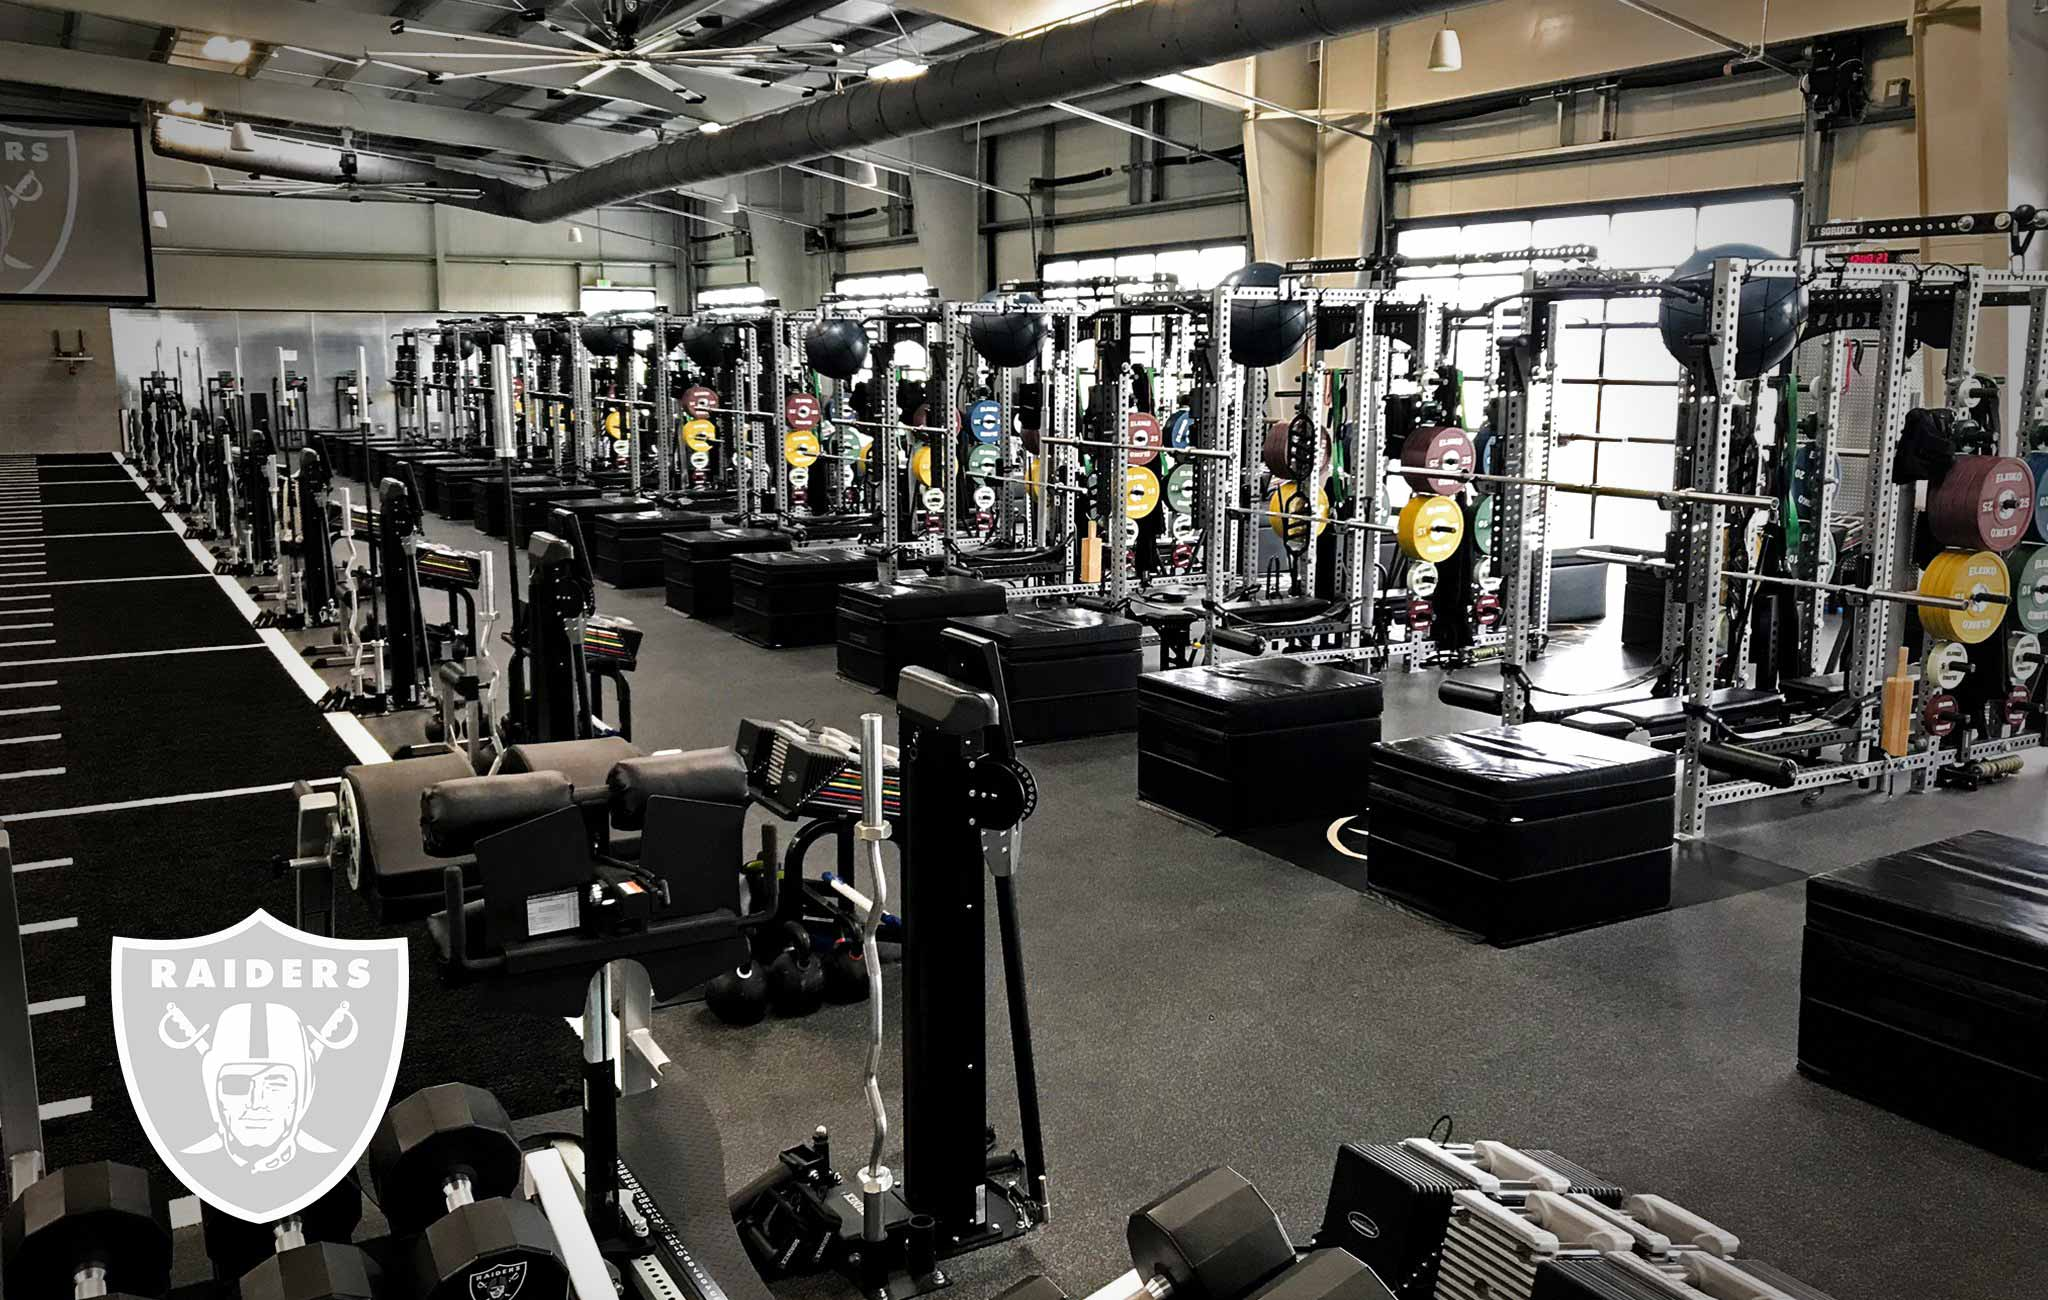 Oakland Raiders Sorinex strength and conditioning facility